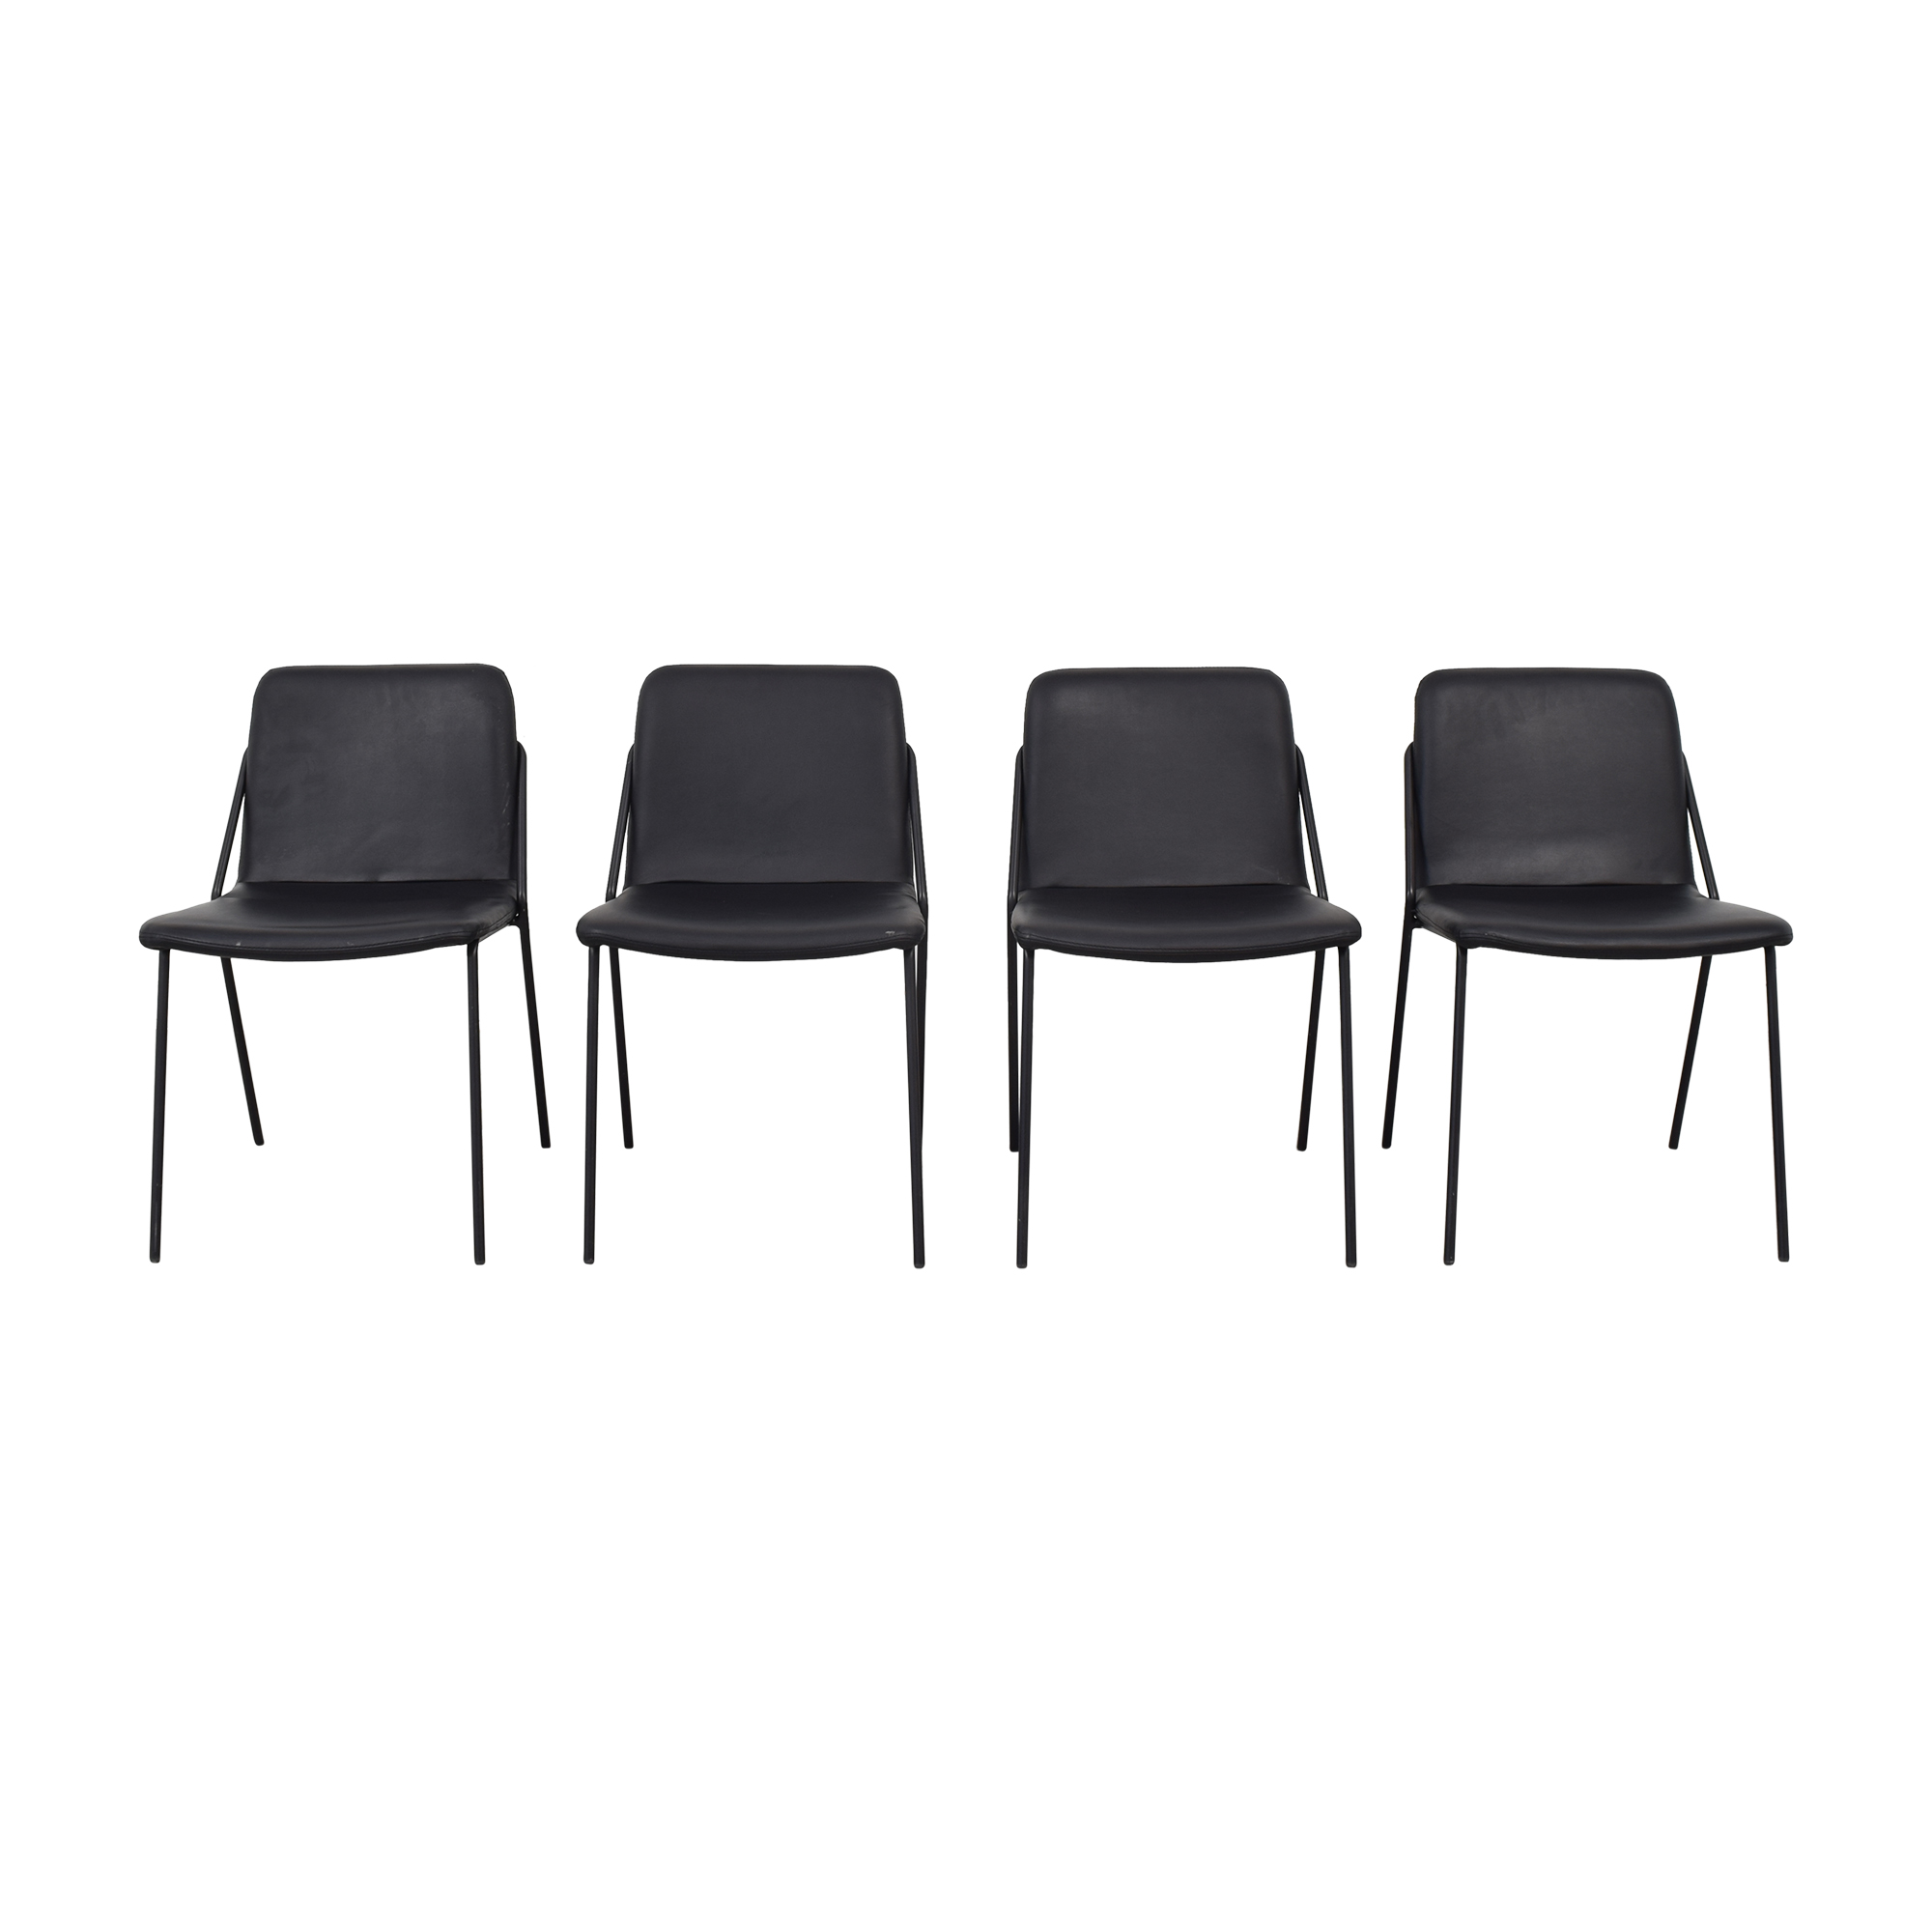 m.a.d. Black Sling Spholstered Chairs m.a.d.